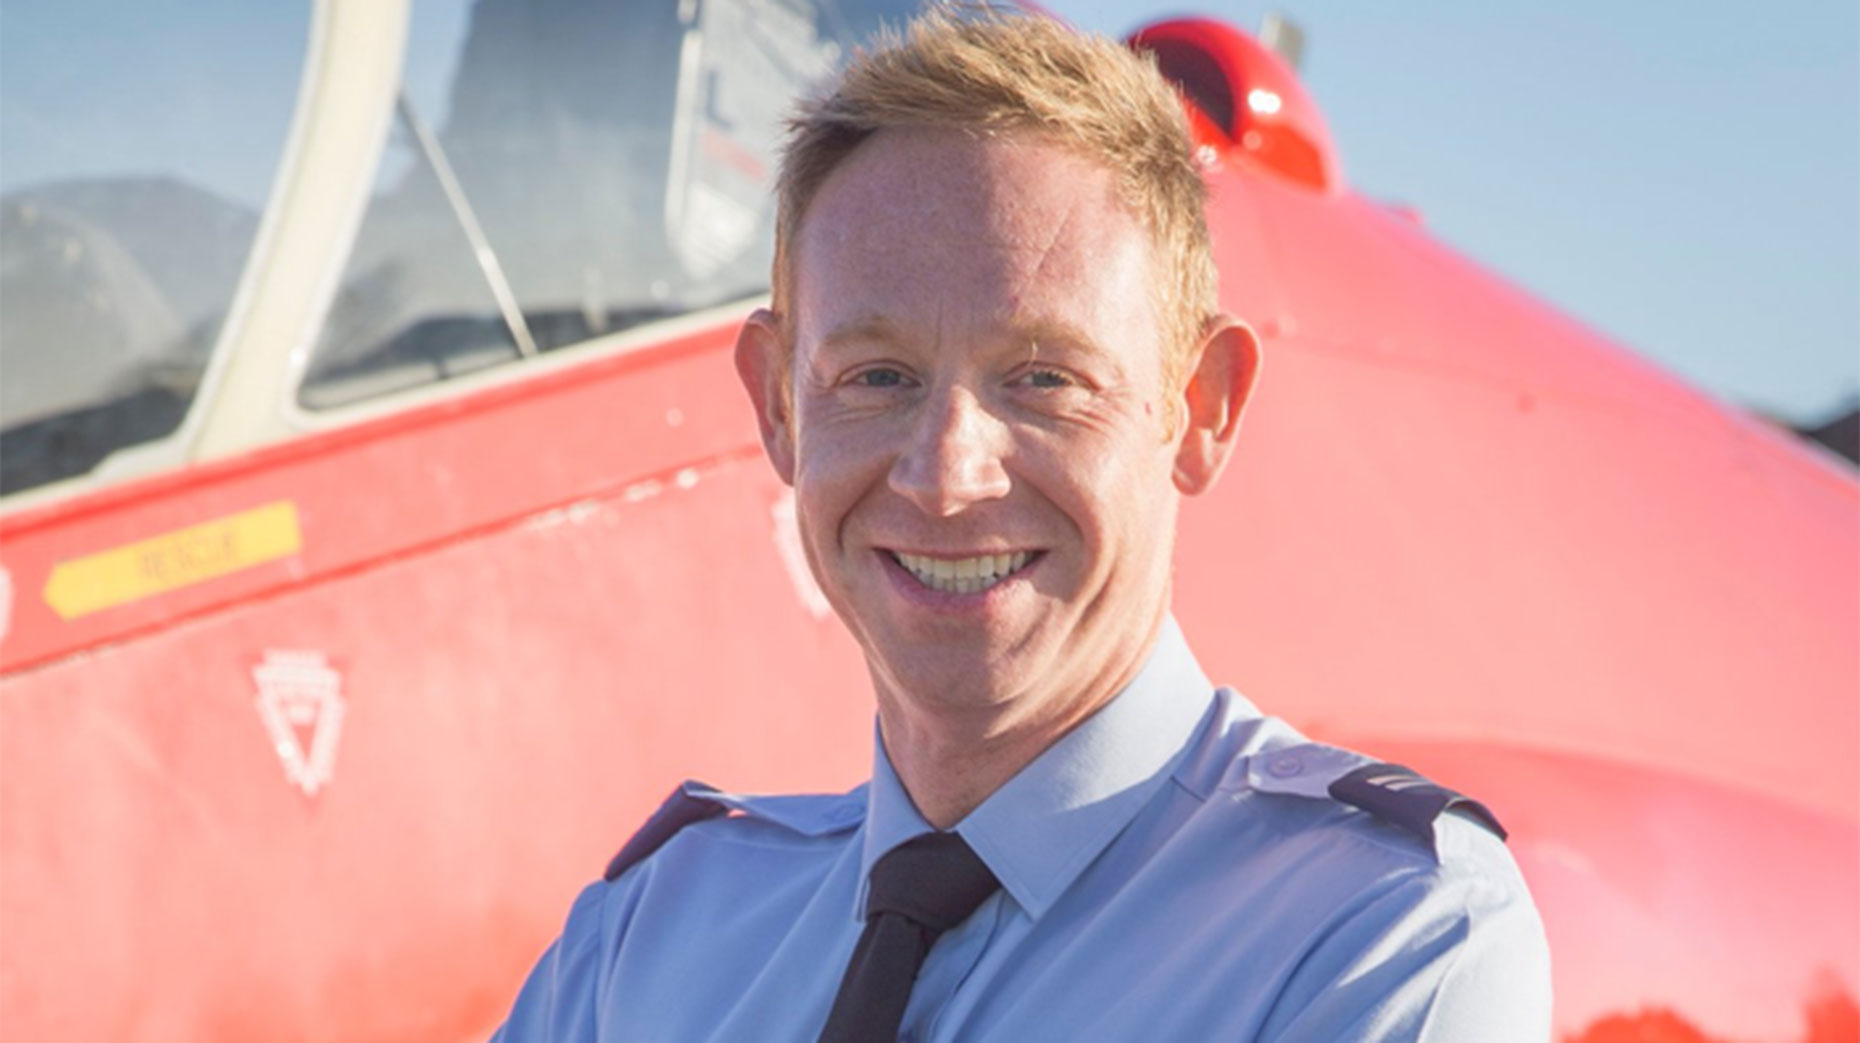 Red Arrows pay tribute to flier killed in jet crash